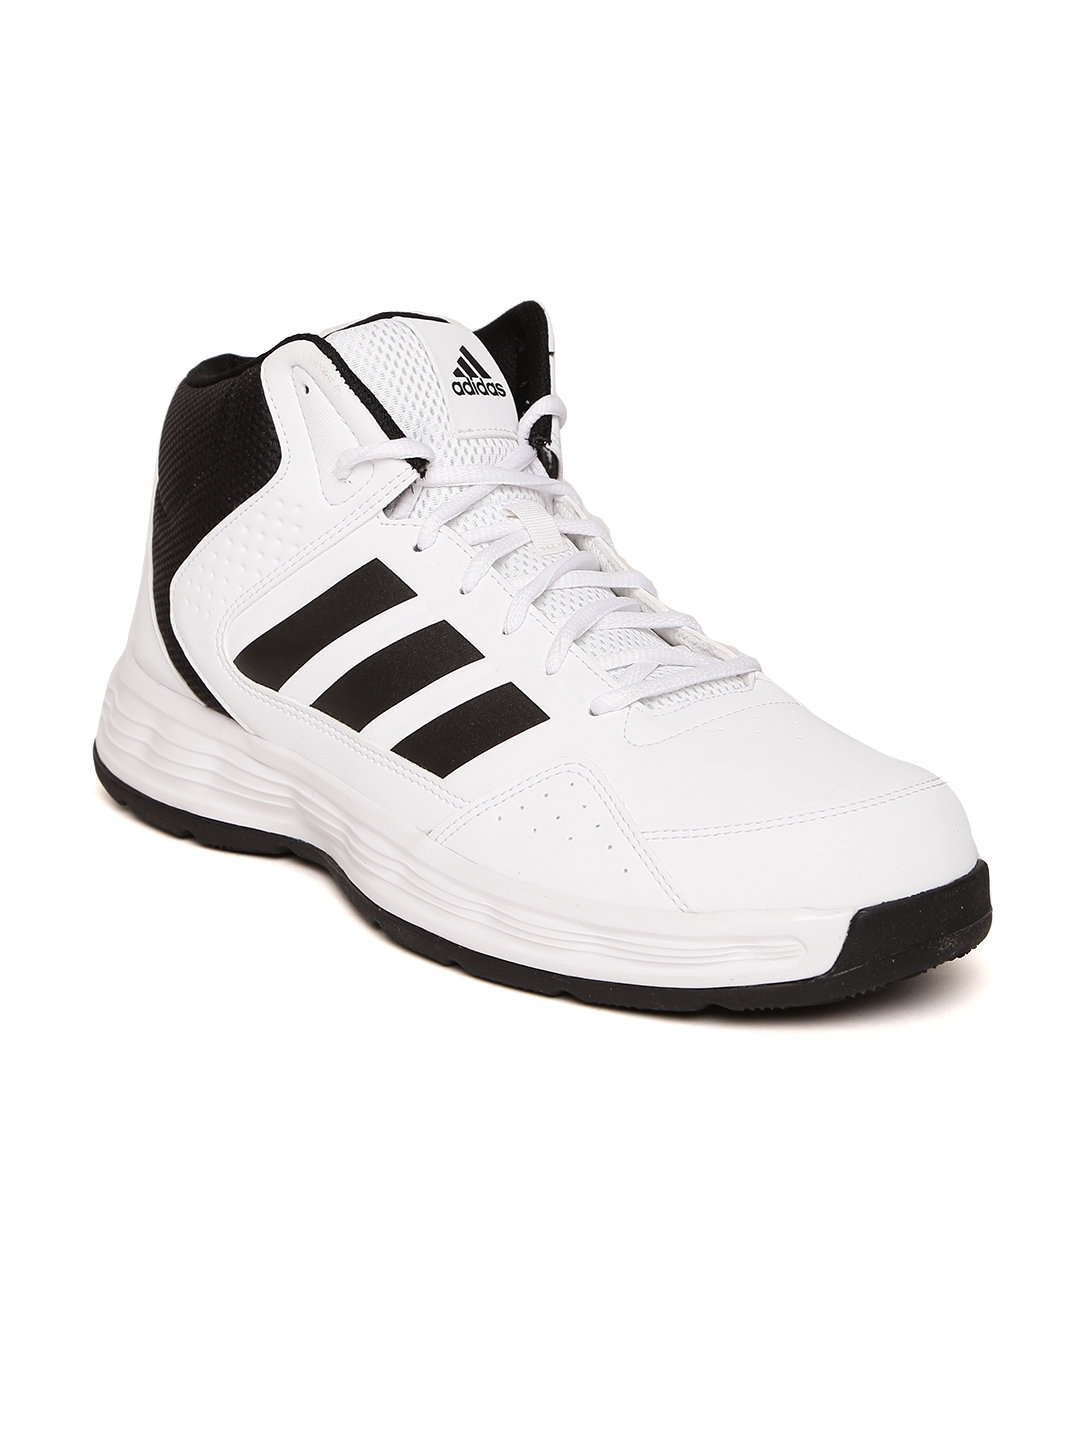 cheaper 54dfd 119ad ADIDAS Men White ADI RIB Synthetic Mid-Top Basketball Shoes